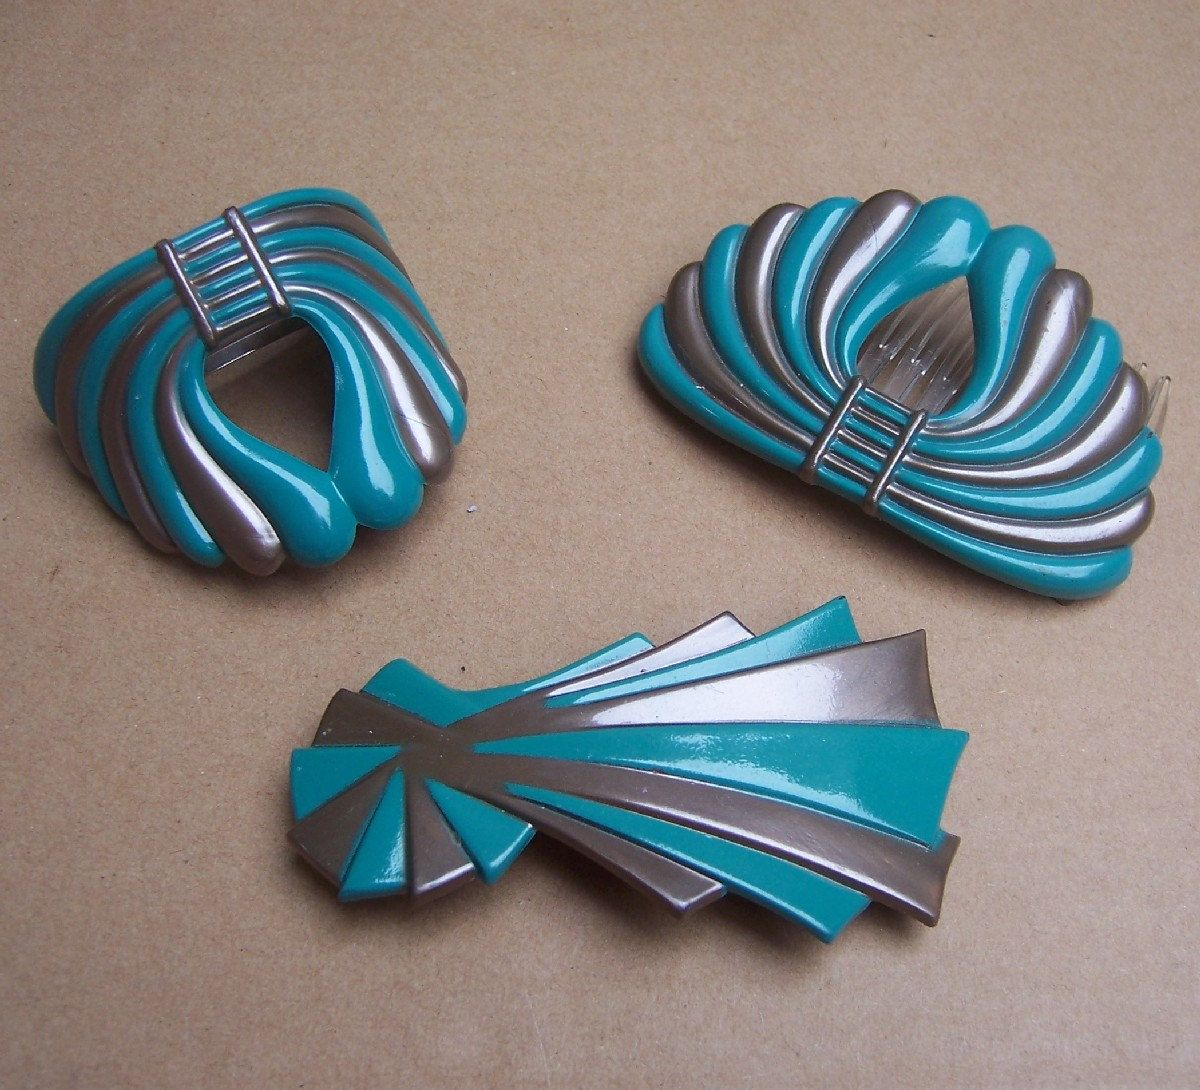 Vintage hair accessory holder - Vintage Hair Accessory Blue Stripey Hair Comb Pony Tail Holder